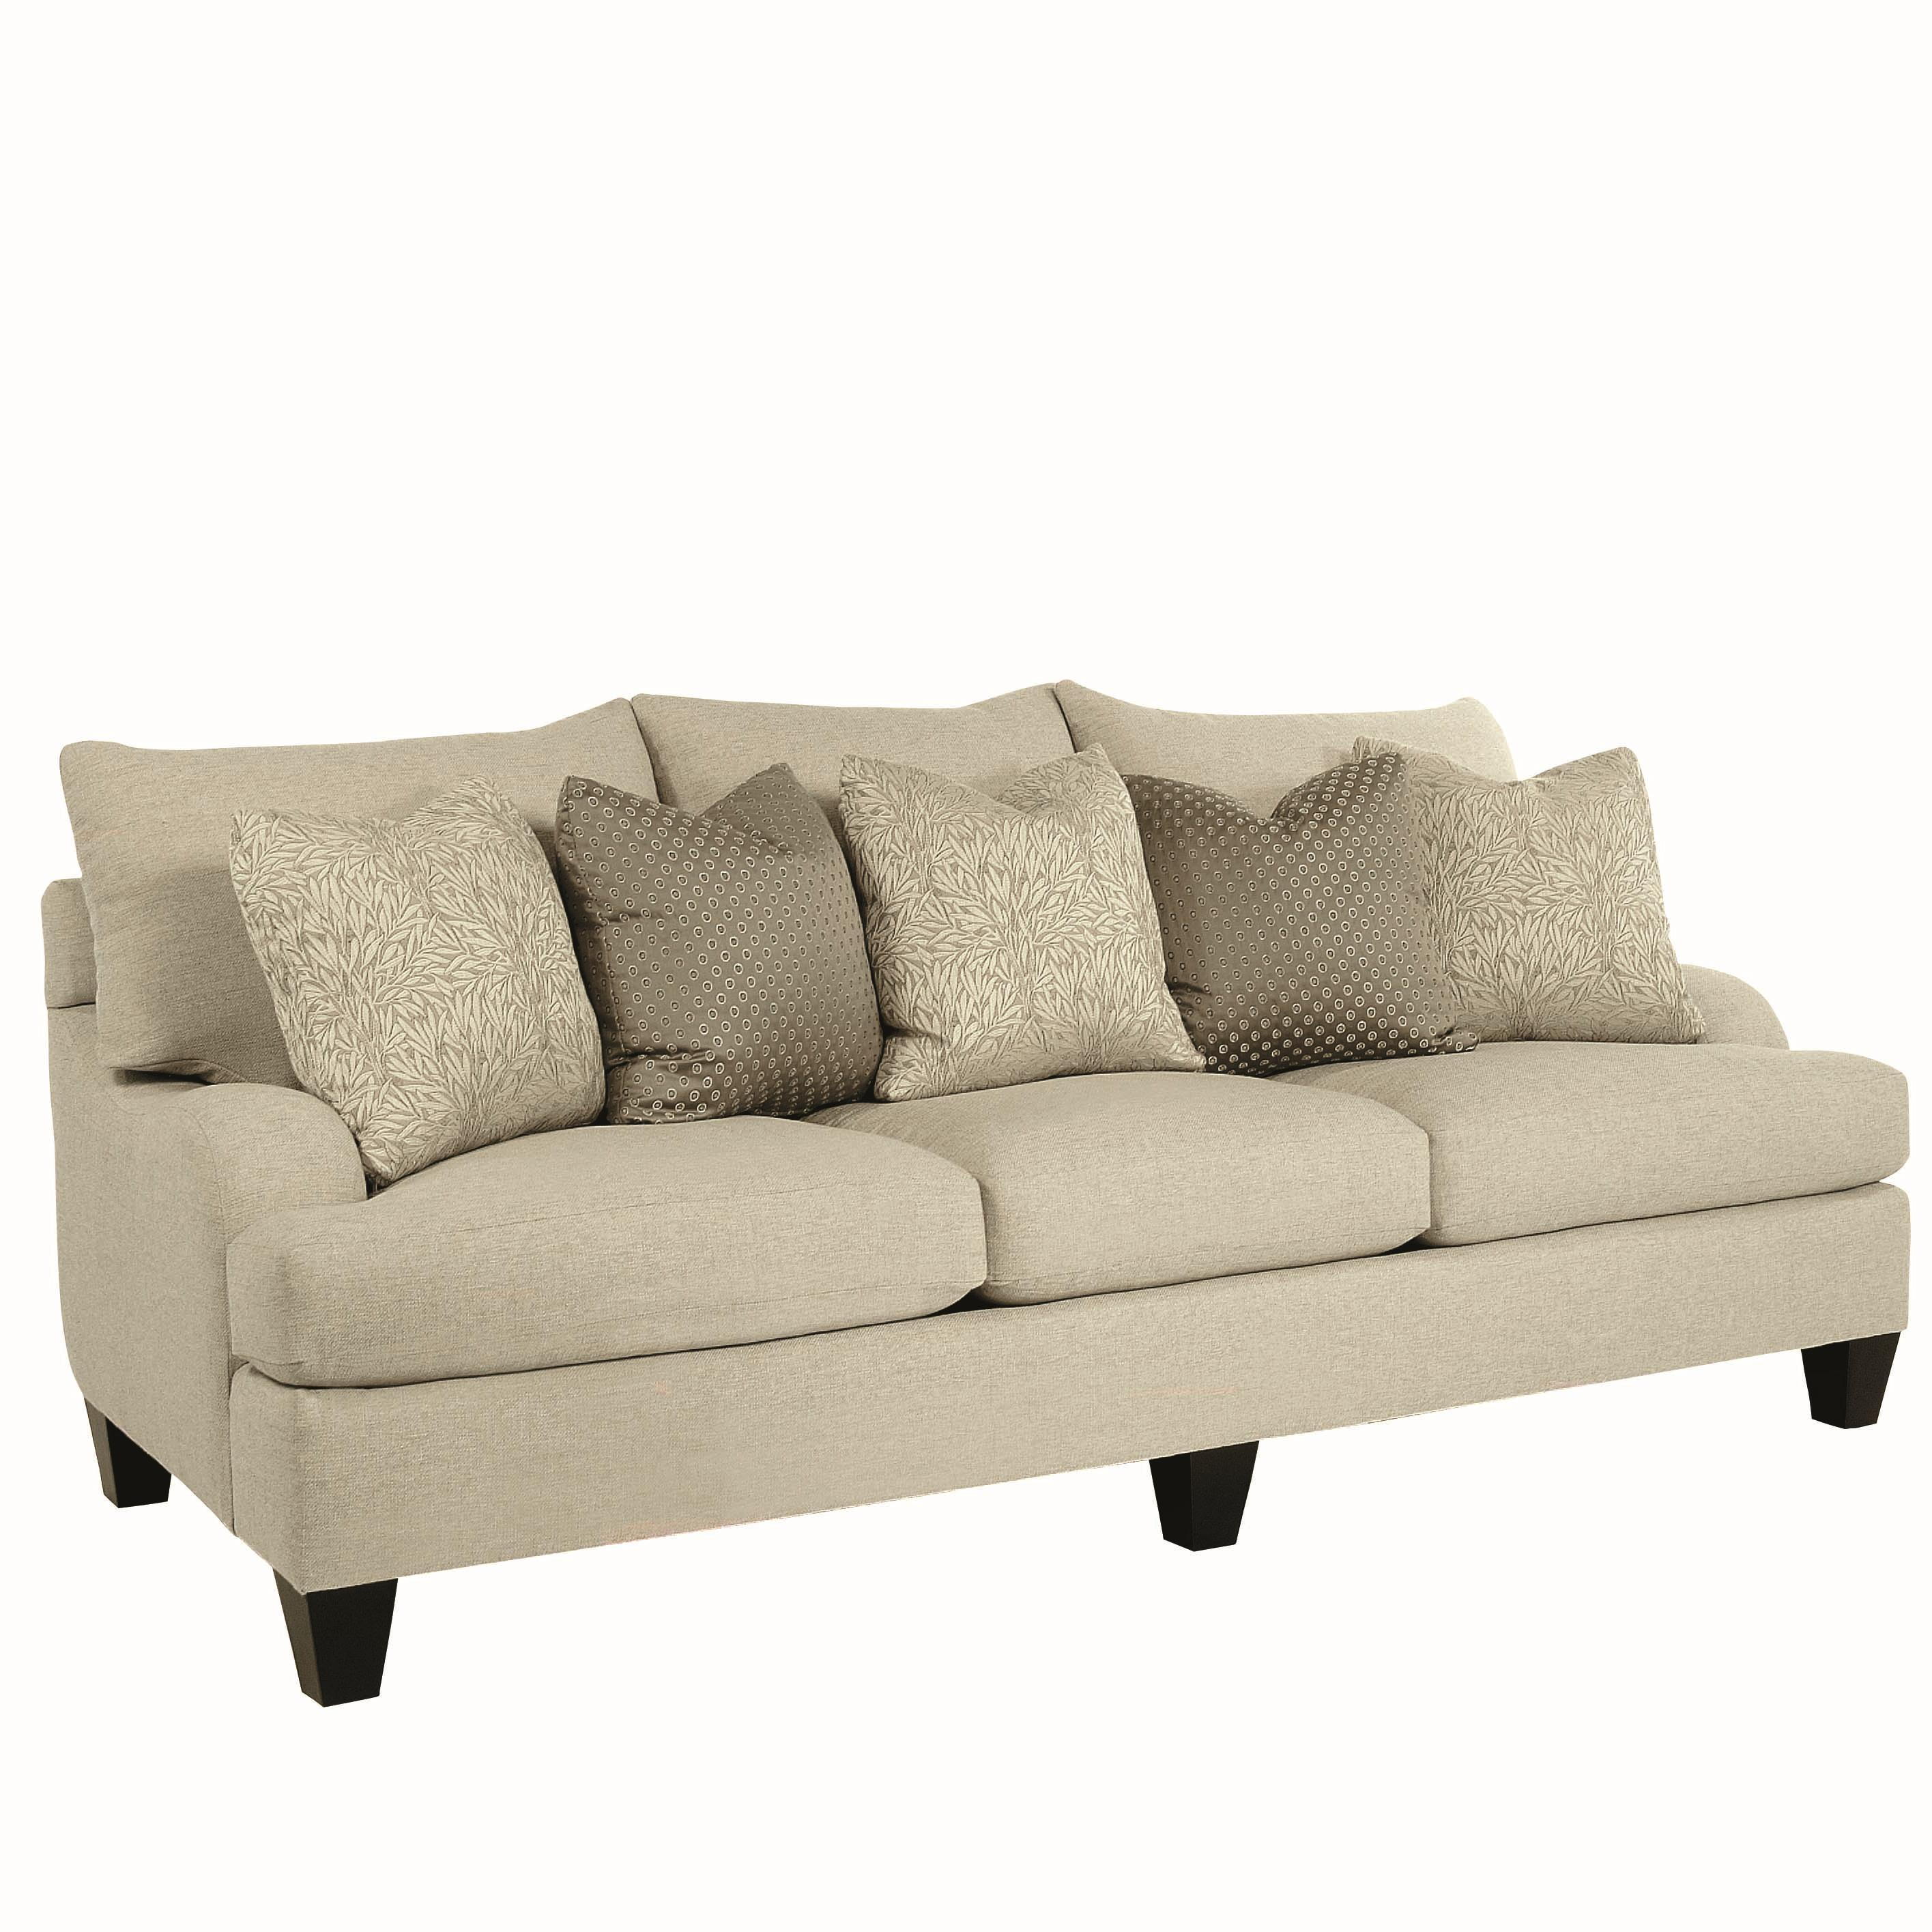 Bernhardt Brooke Upholstered Sofa with Block Legs - Dunk & Bright ...